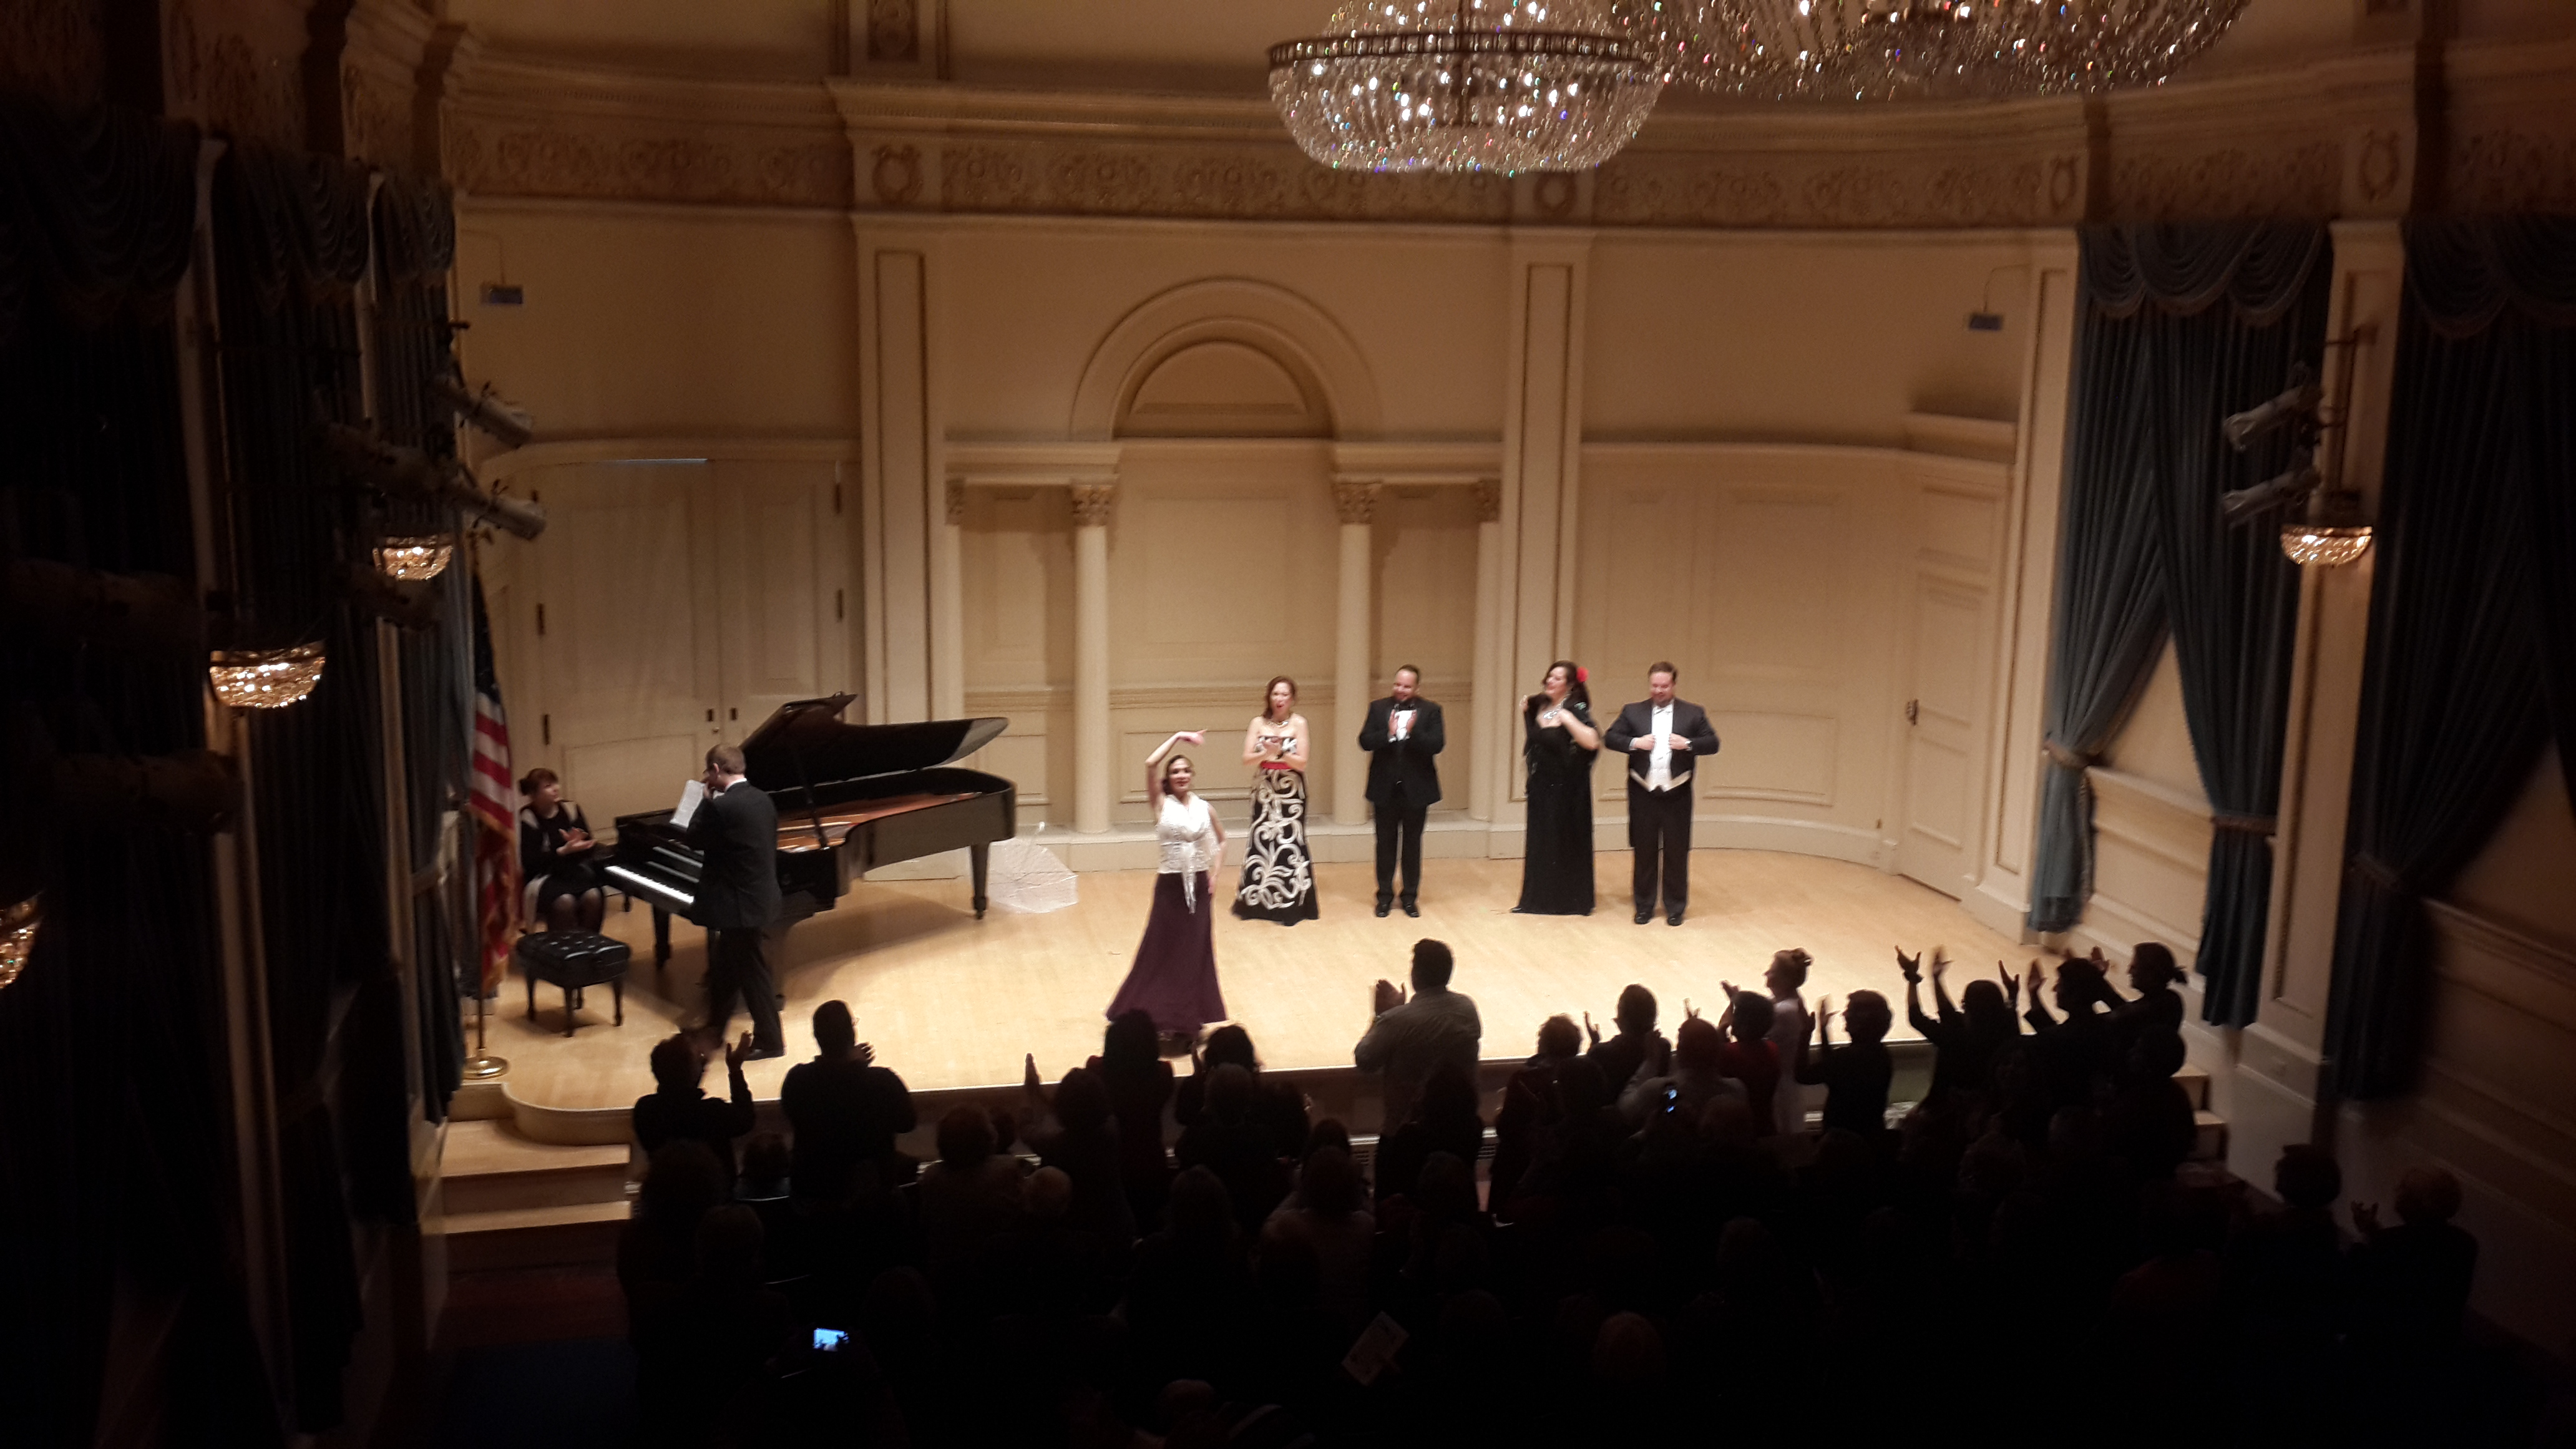 bows at Carnegie Hall